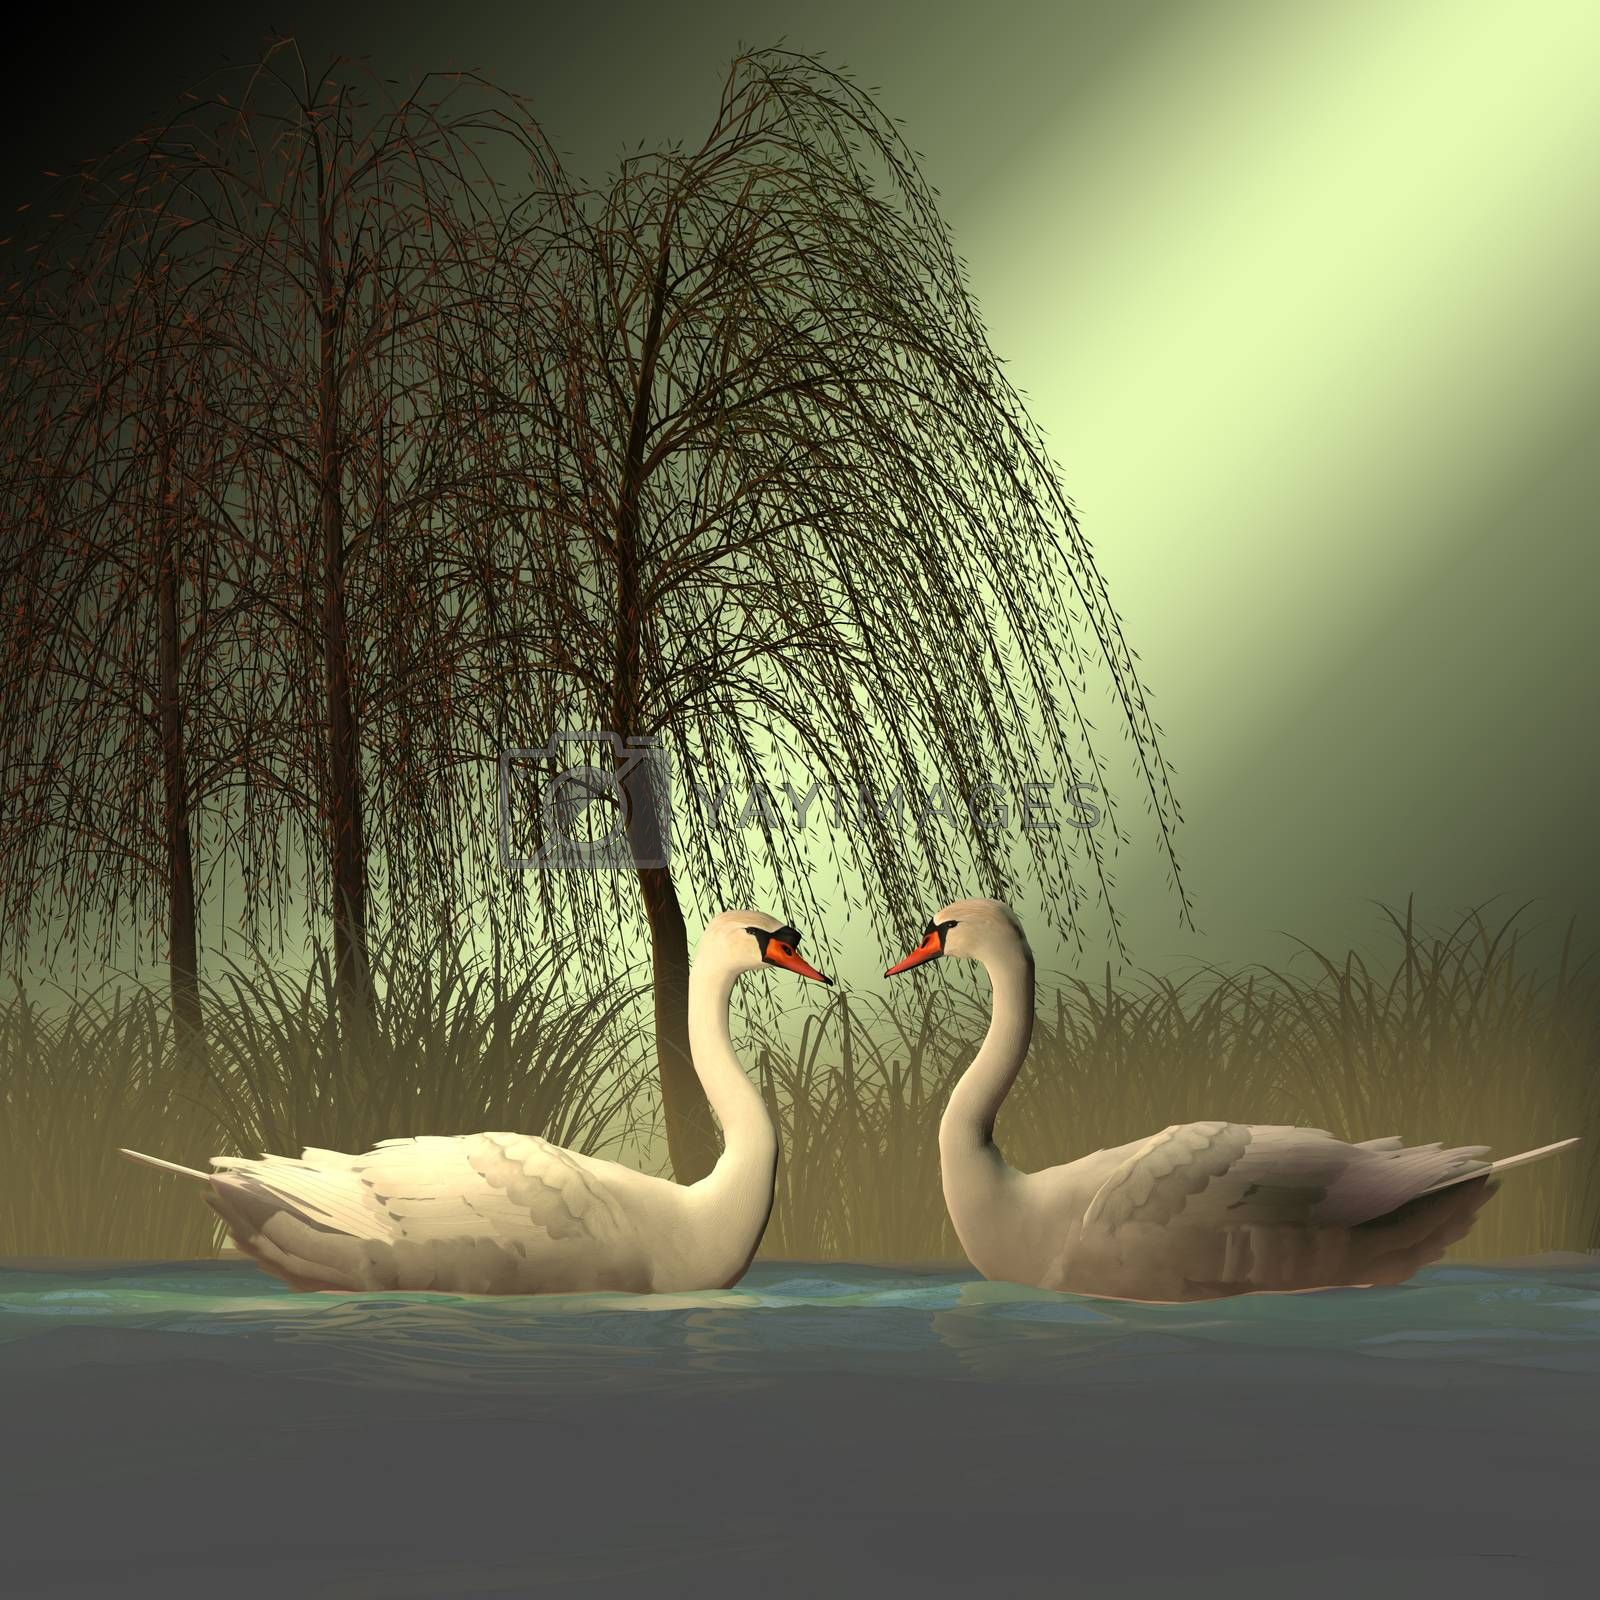 The Mute Swan bird has white plumage with an orange beak bordered by black and lives in Siberia, Europe, Africa and North America.